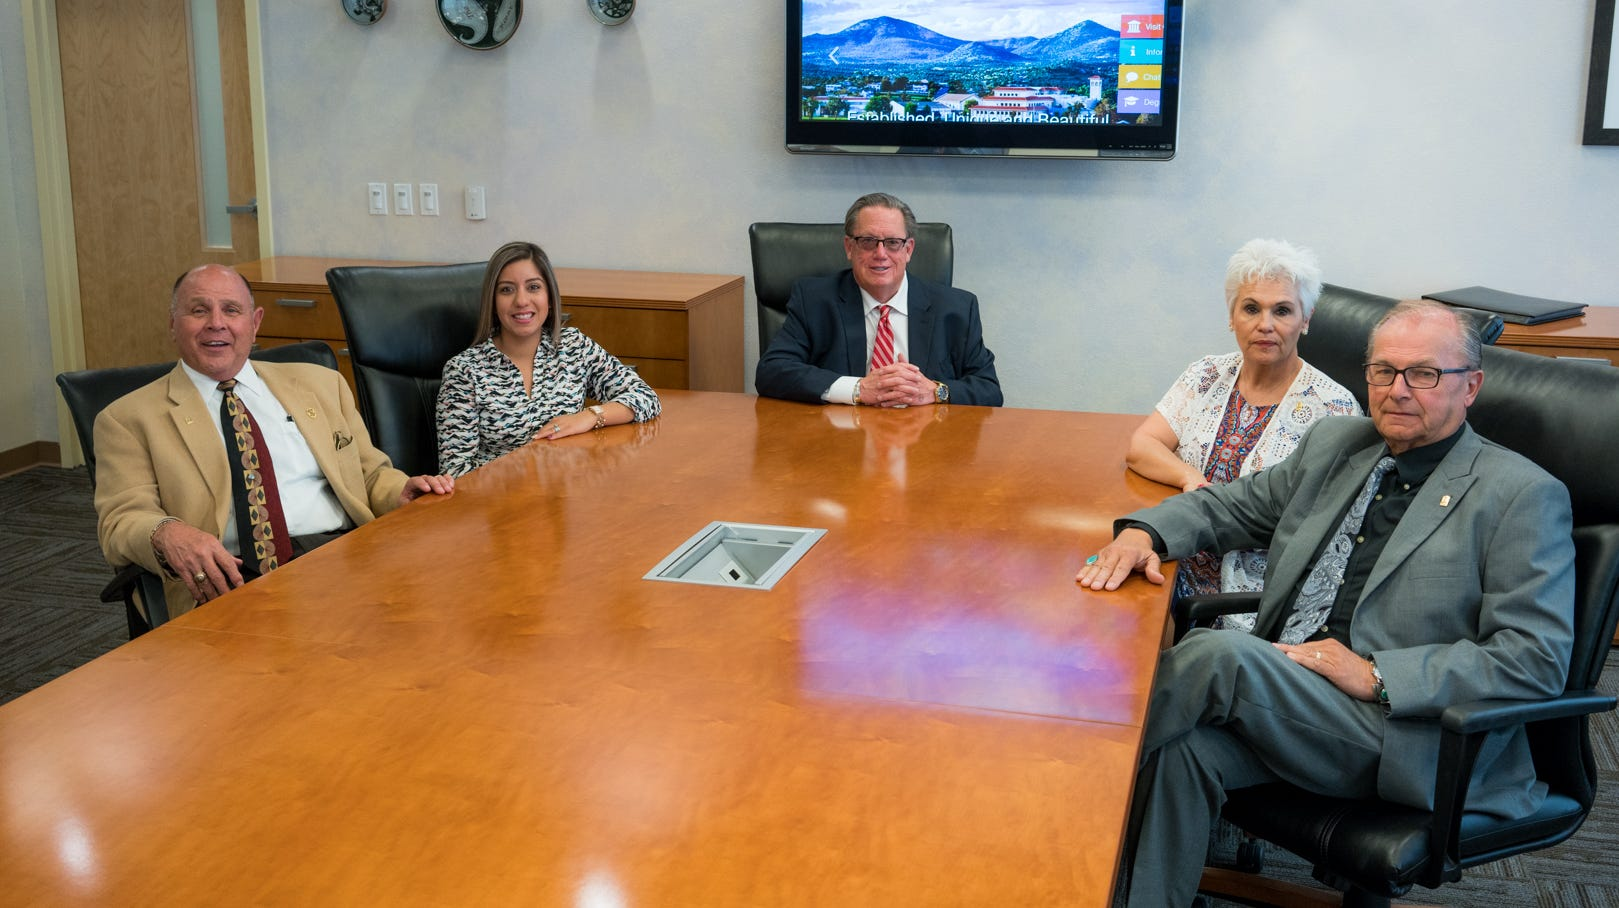 Western New Mexico University regents, from left, Carl Foster, Arlean Murillo, Jerry Walz, Janice Baca-Argabright and Dan Salzwedel met on campus Monday, September 17.